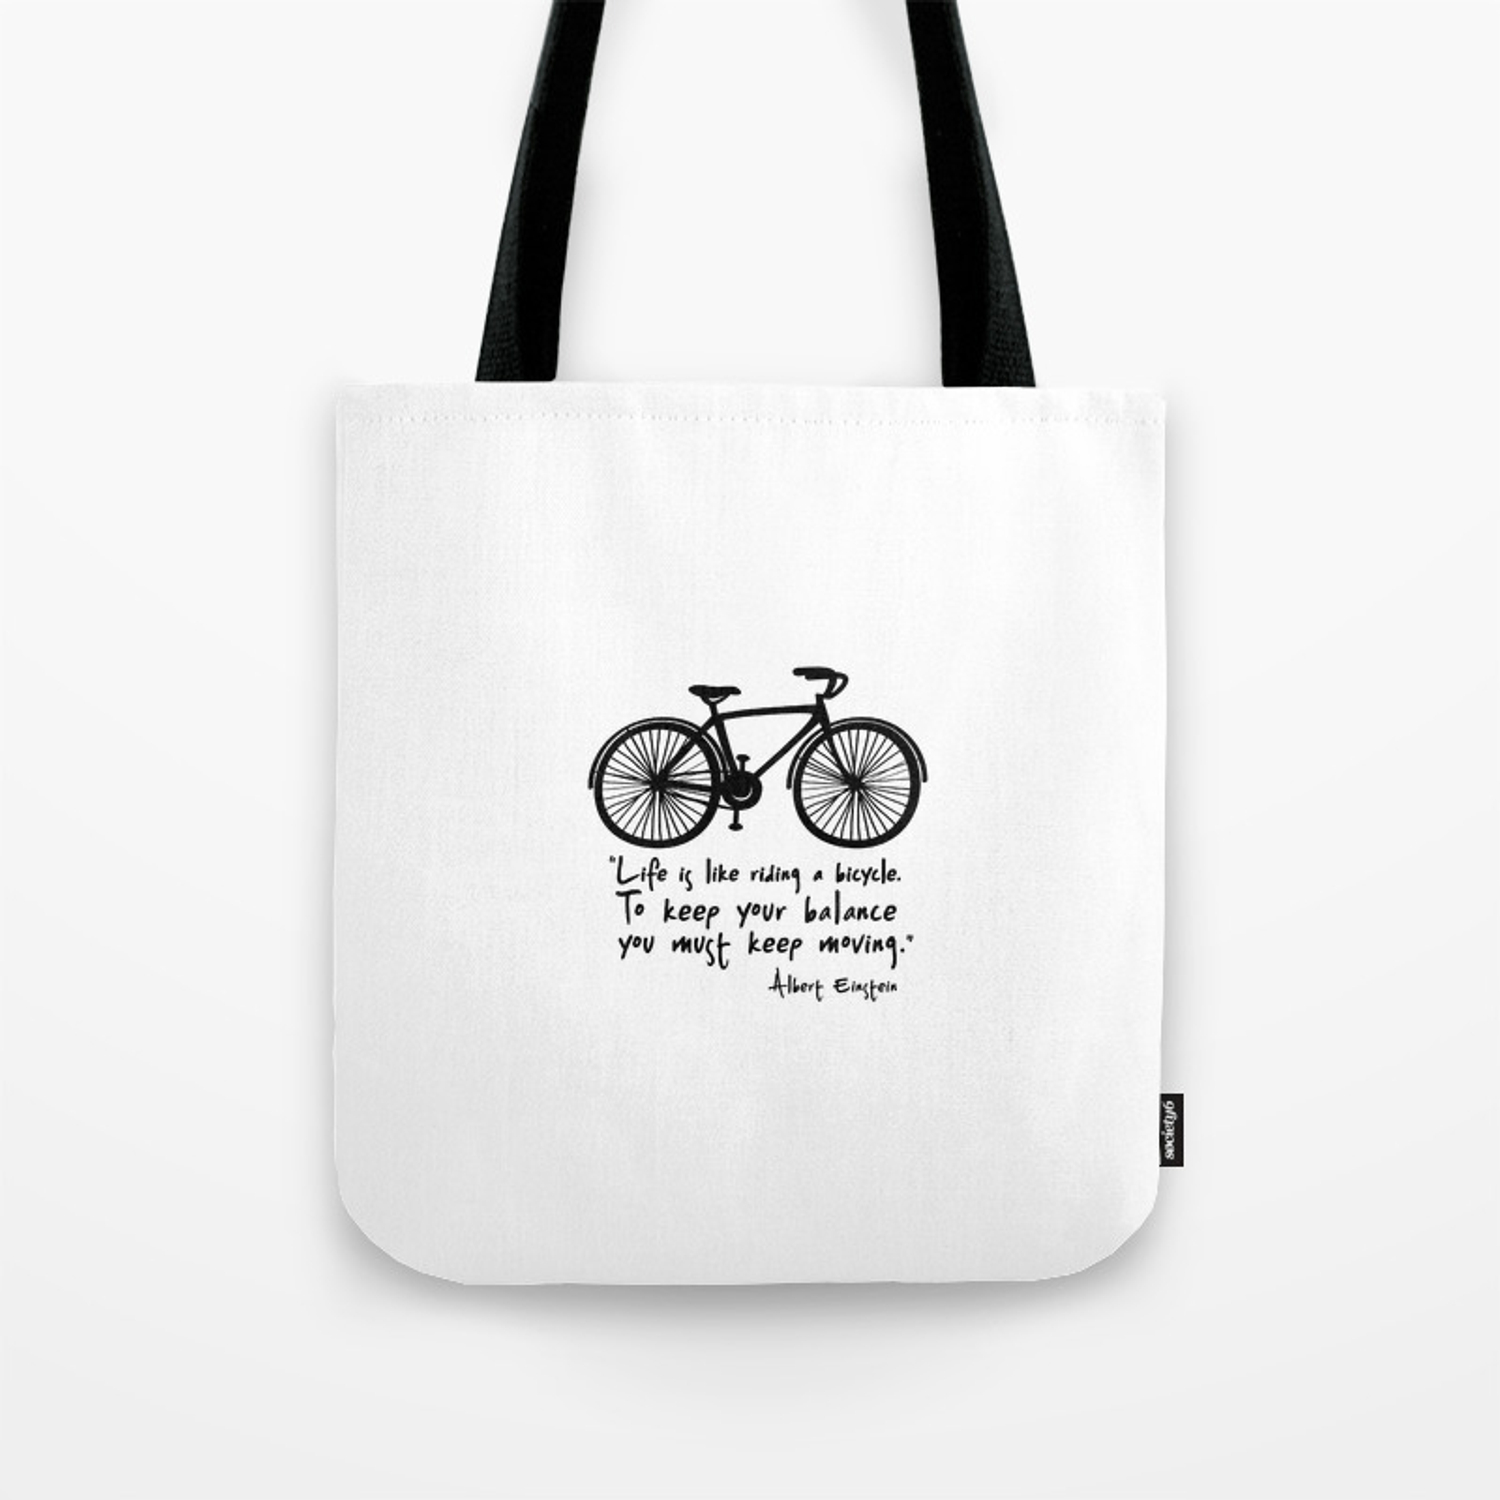 ECO FRIENDLY Life Is Like Riding A Bicycle,Tote Bag Canvas Tote Bag Cute Tote Bag Tote Bag Grocery Bag